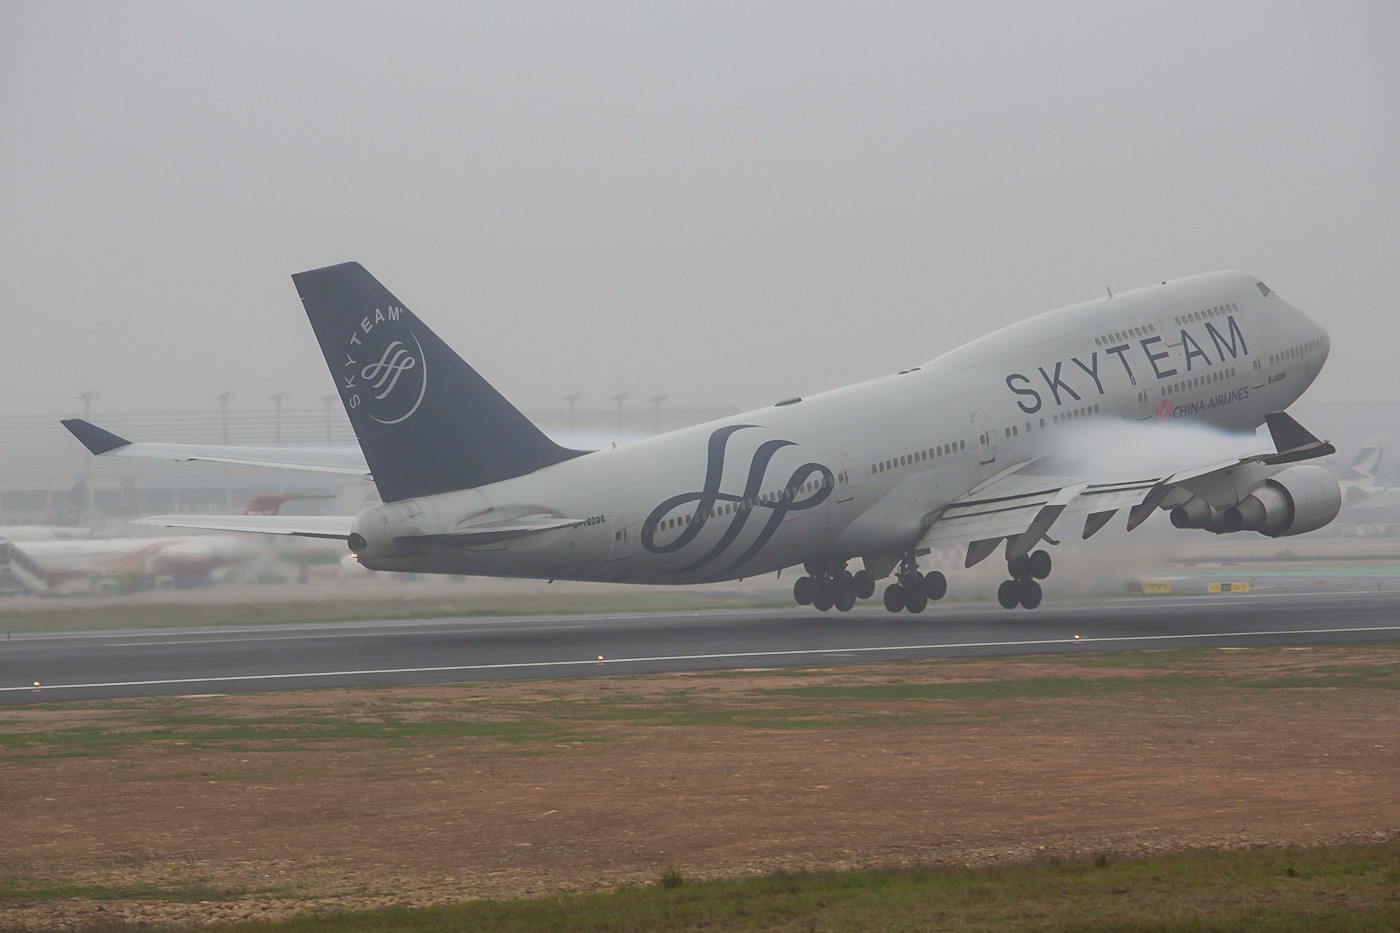 Boeing 747-400 der China Airlines in den Farben des Skyteam.